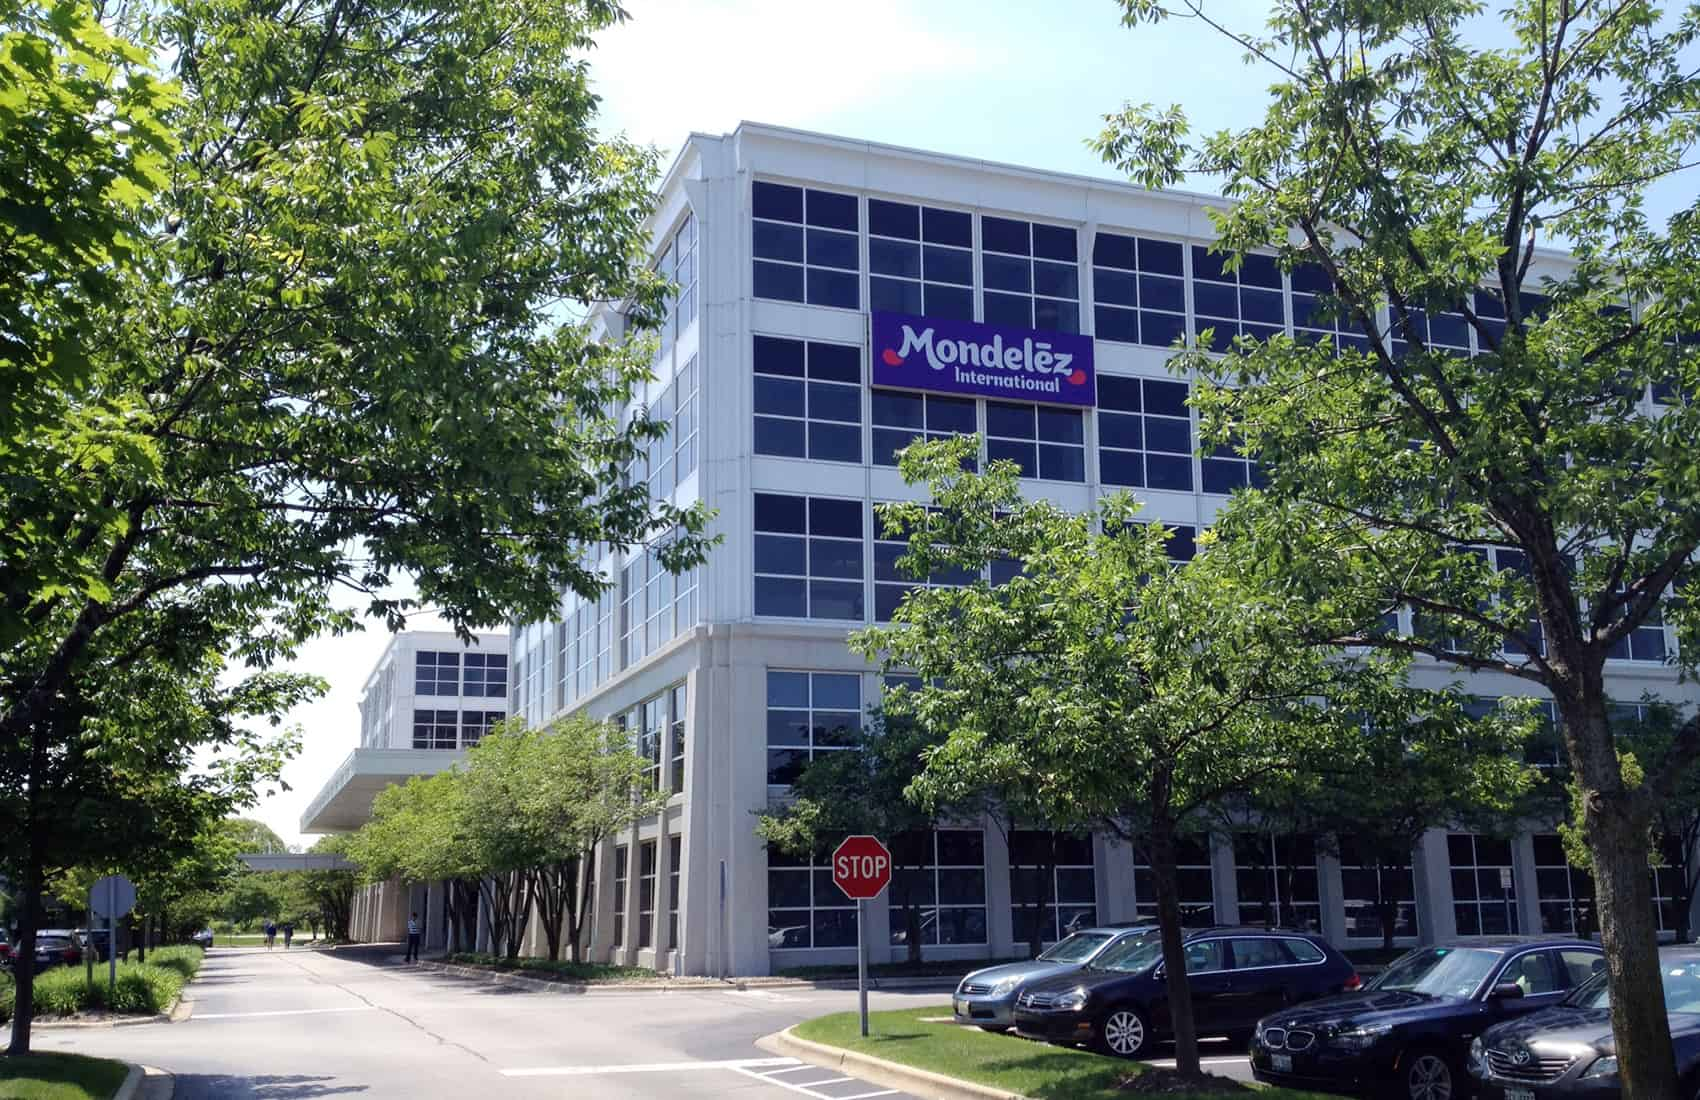 Mondelēz headquarters in Deerfield, Illinois.